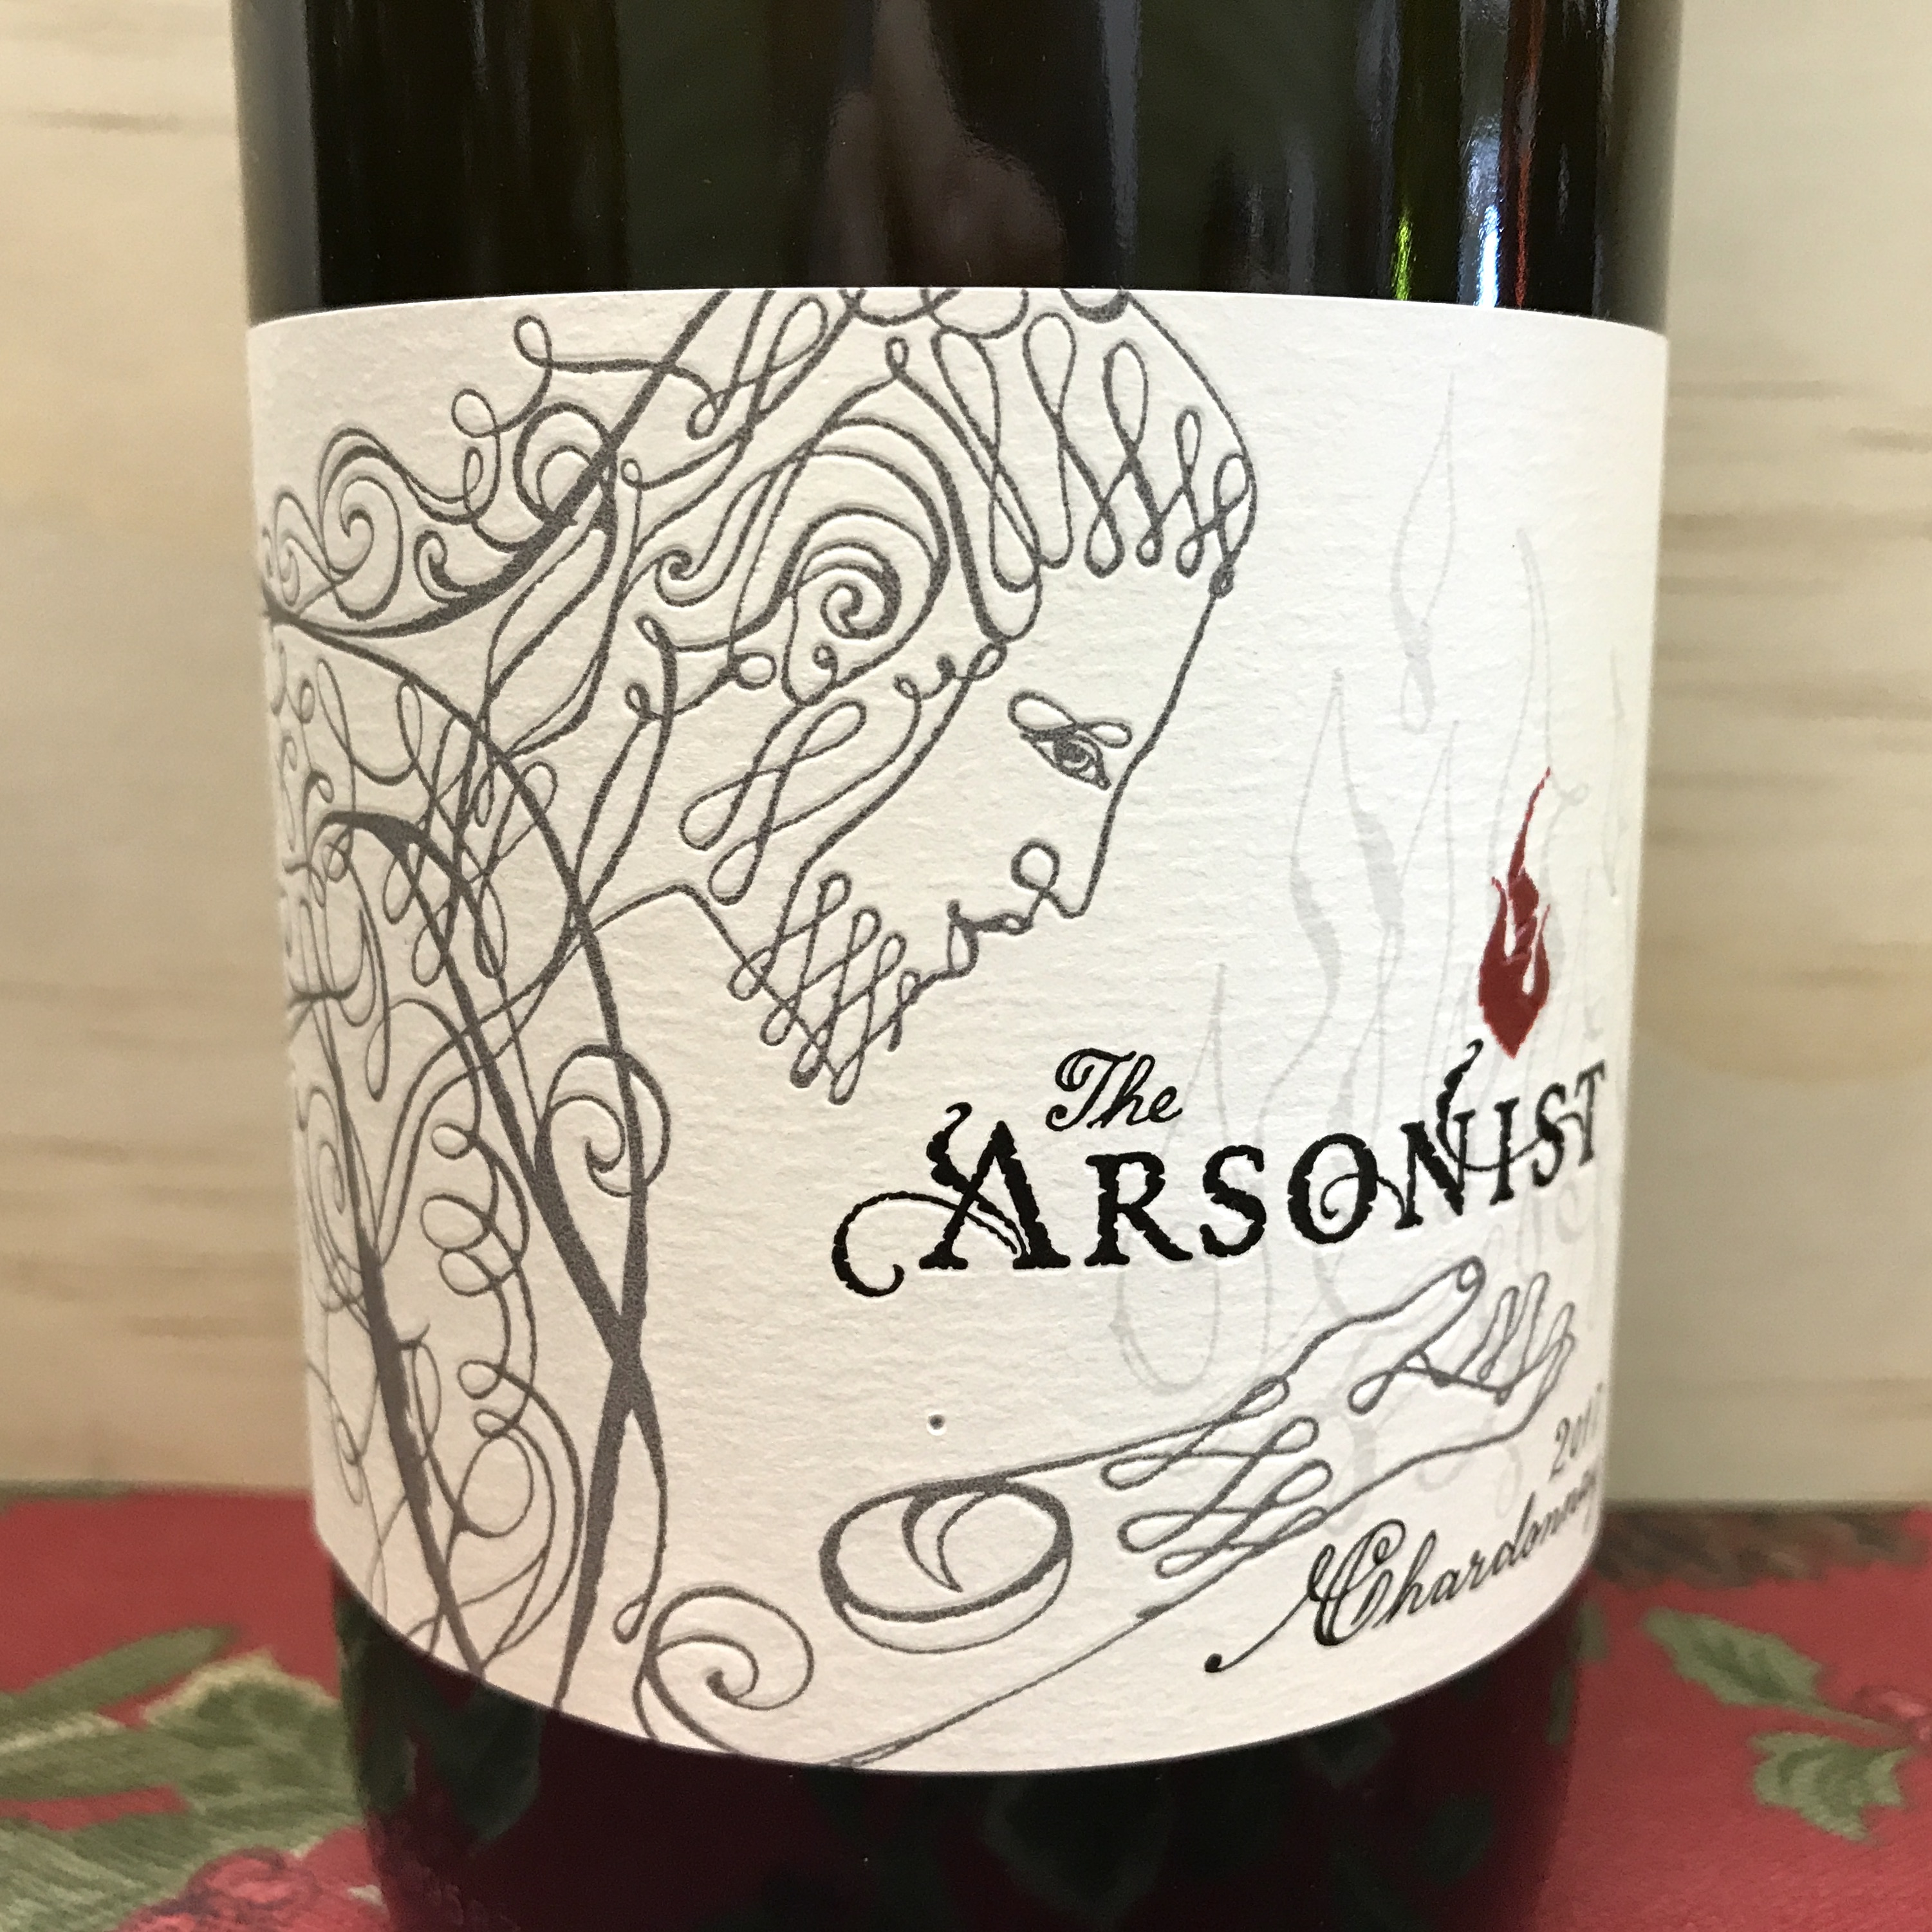 Matchbook the Arsonist Chardonnay 2017 Dunnigan Hills